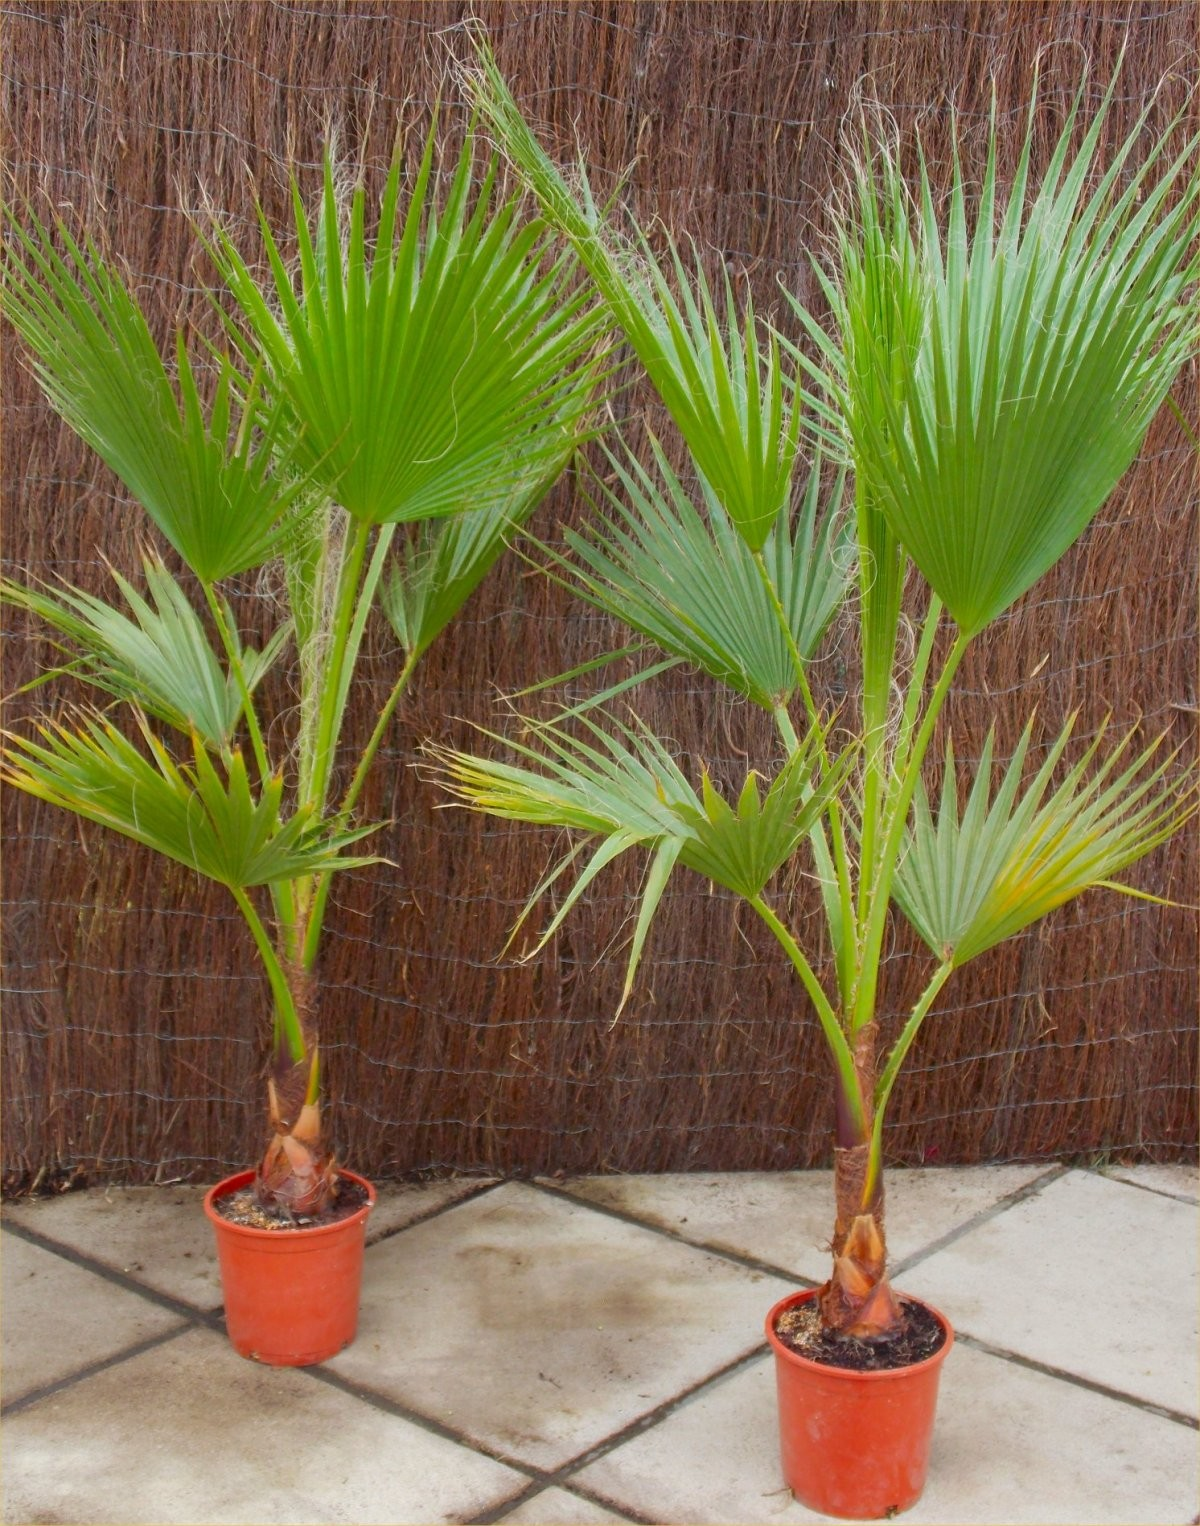 Charming SPECIAL DEAL   Mexican Fan Palm   Washingtonia Robusta For Patio Or Deck    Approx 100 120cms Tall